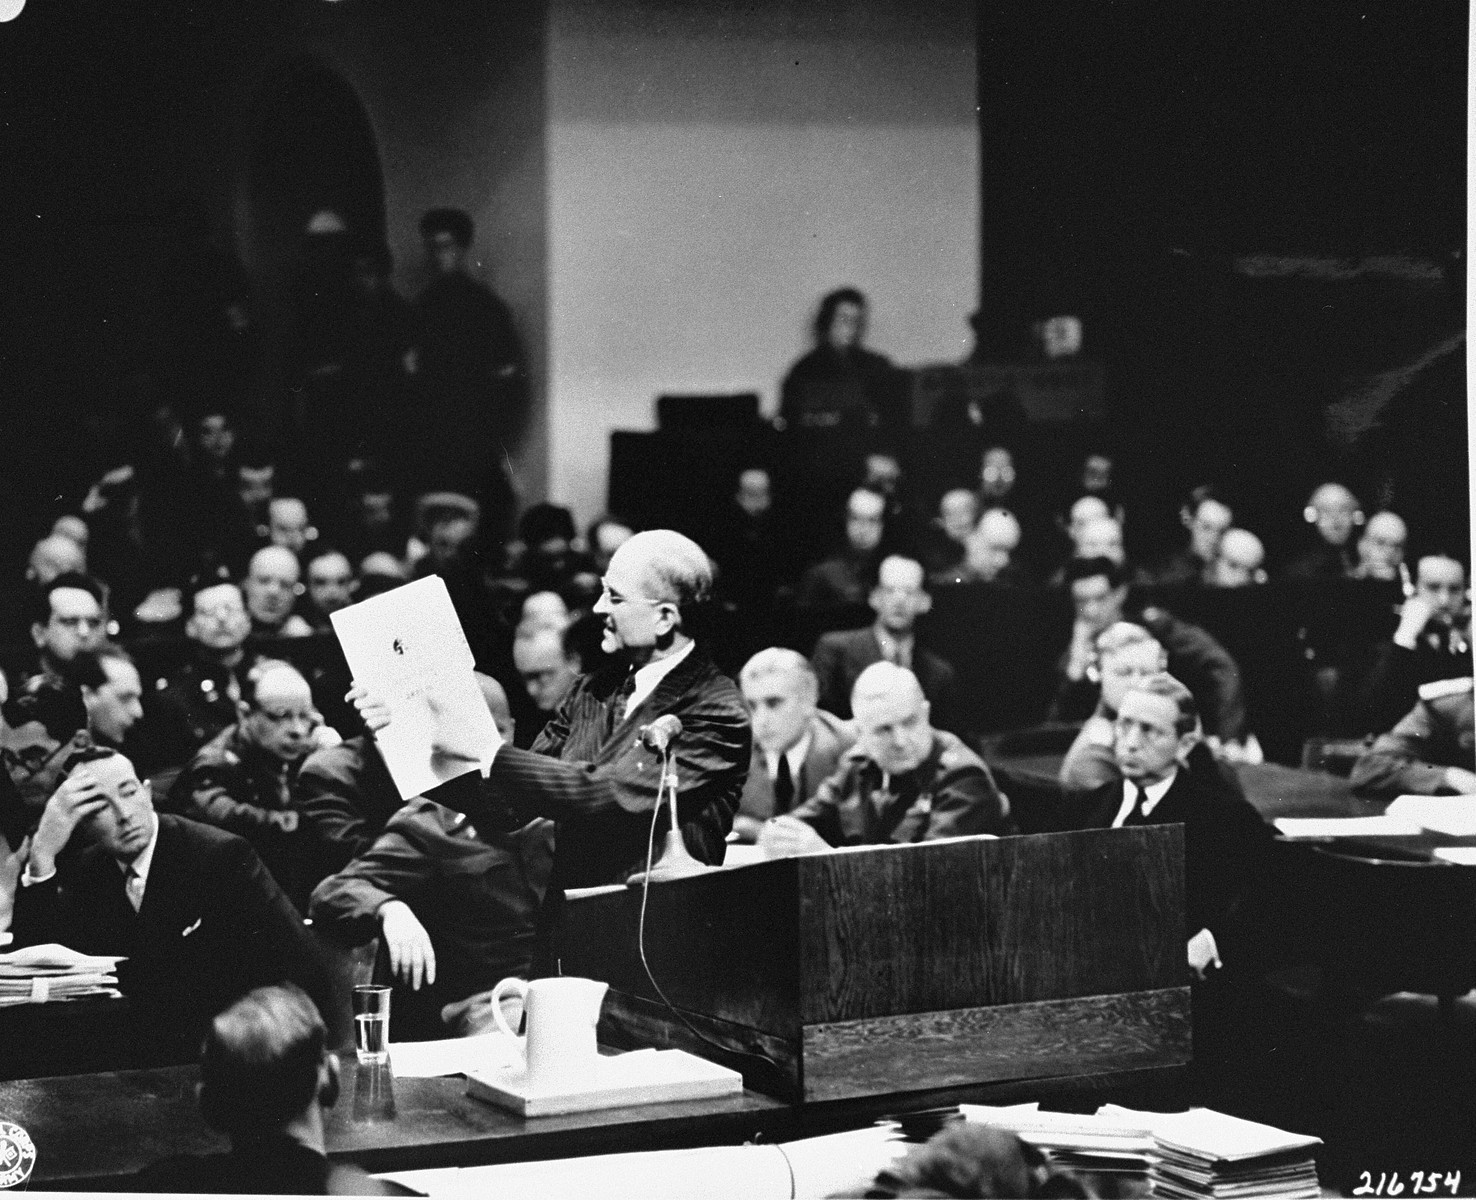 Executive trial counsel Colonel Robert G. Storey presents as evidence a document detailing Nazi intentions to launch an aggressive war, at the International Military Tribunal trial of war criminals at Nuremberg.